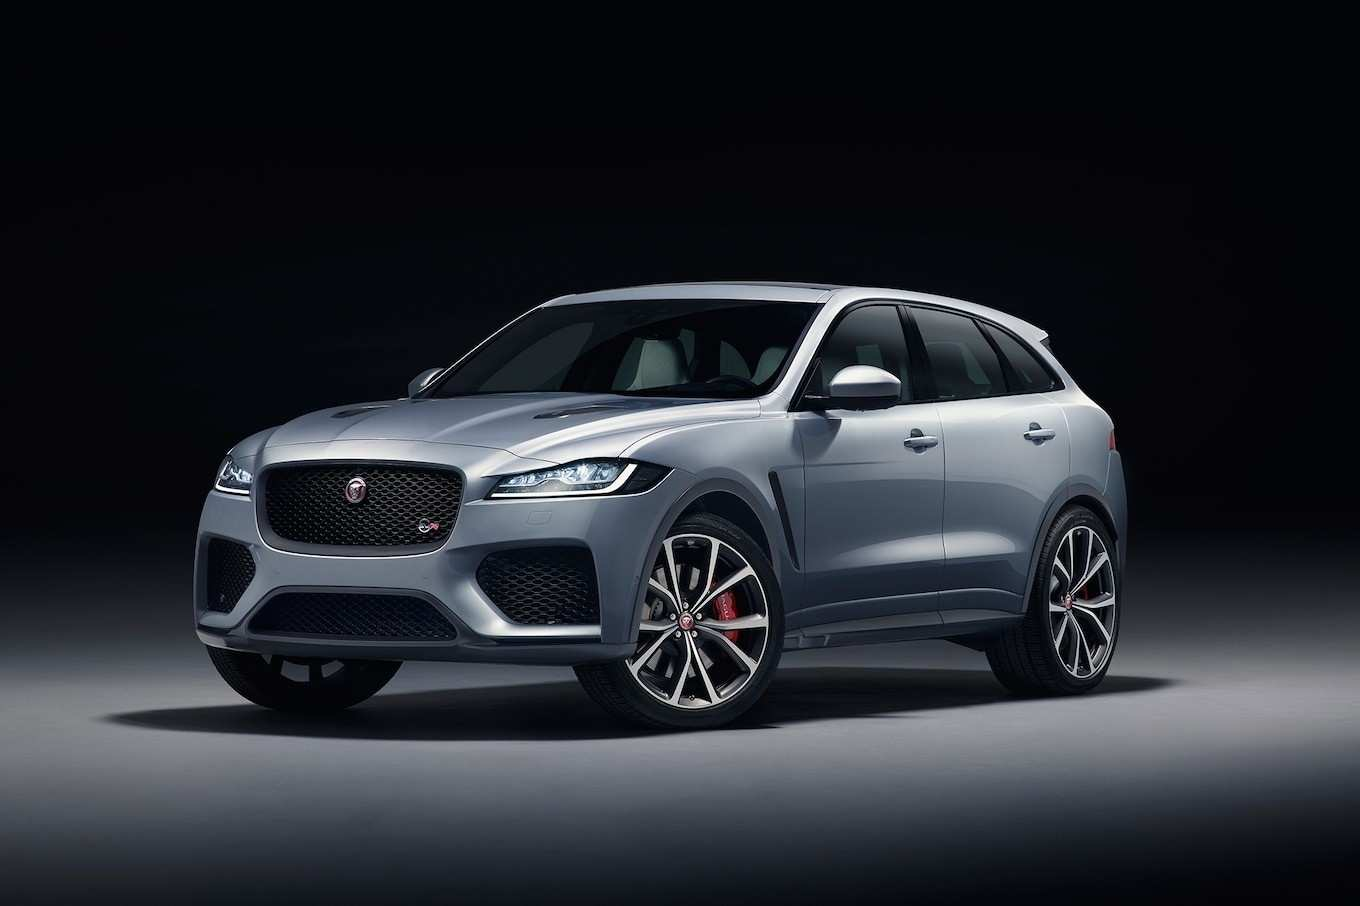 49 New 2019 Jaguar C X17 Crossover Overview